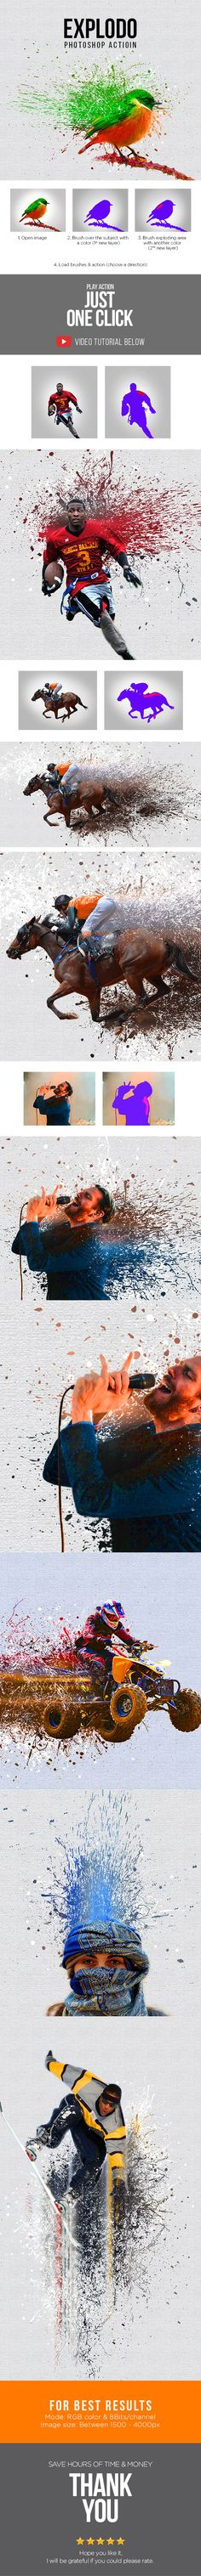 Explodo Photoshop Action #sketch #splatter • Download ➝ https://graphicriver.net/item/explodo-photoshop-action/18577576?ref=pxcr